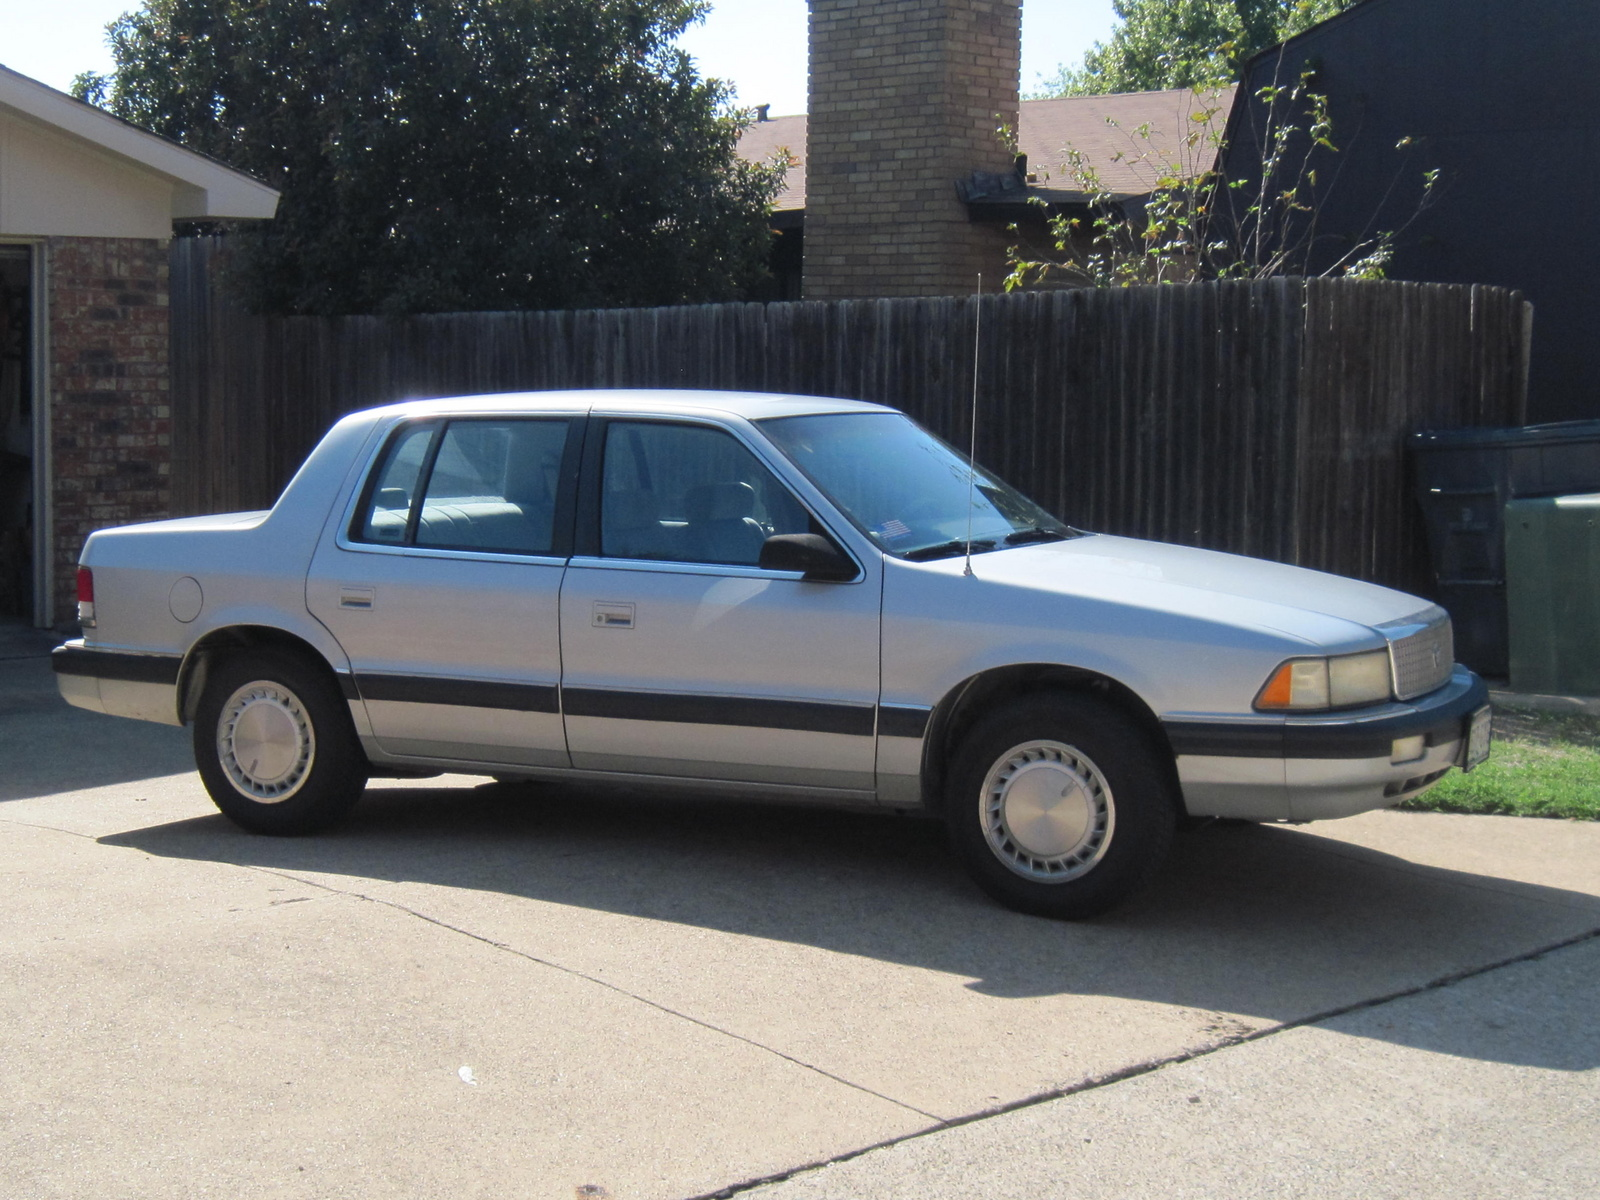 1992 plymouth voyager le with 1990 Plymouth Acclaim Pictures C3257 Pi35917748 on 2003 Chrysler Voyager Pictures C1557 pi35620616 moreover File 1985 Voyager LE together with 1989 2Cvoyager likewise Info also T28743p60 Photo De Mon Chrysler Modifie.